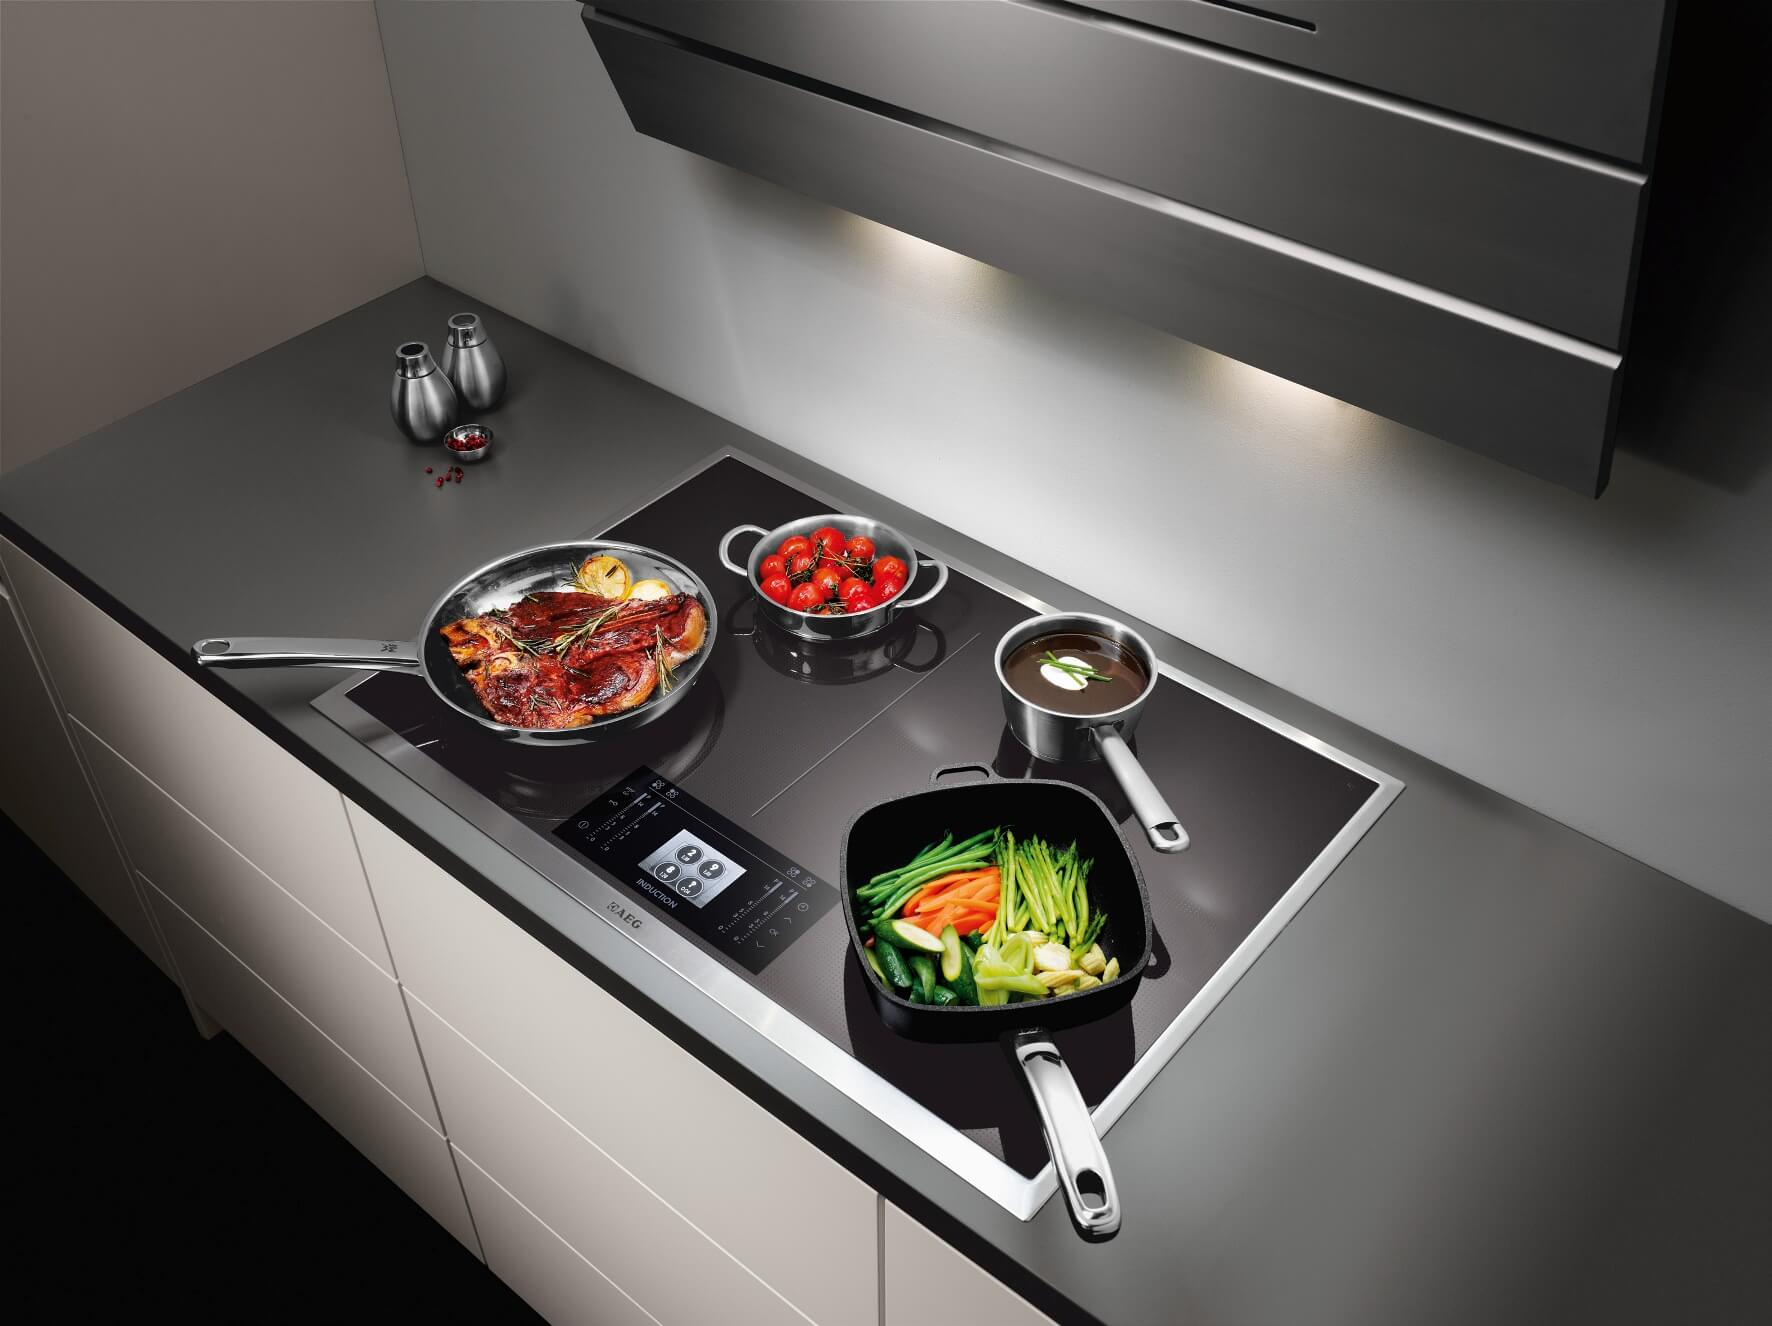 What should you do if the induction hob won't work?